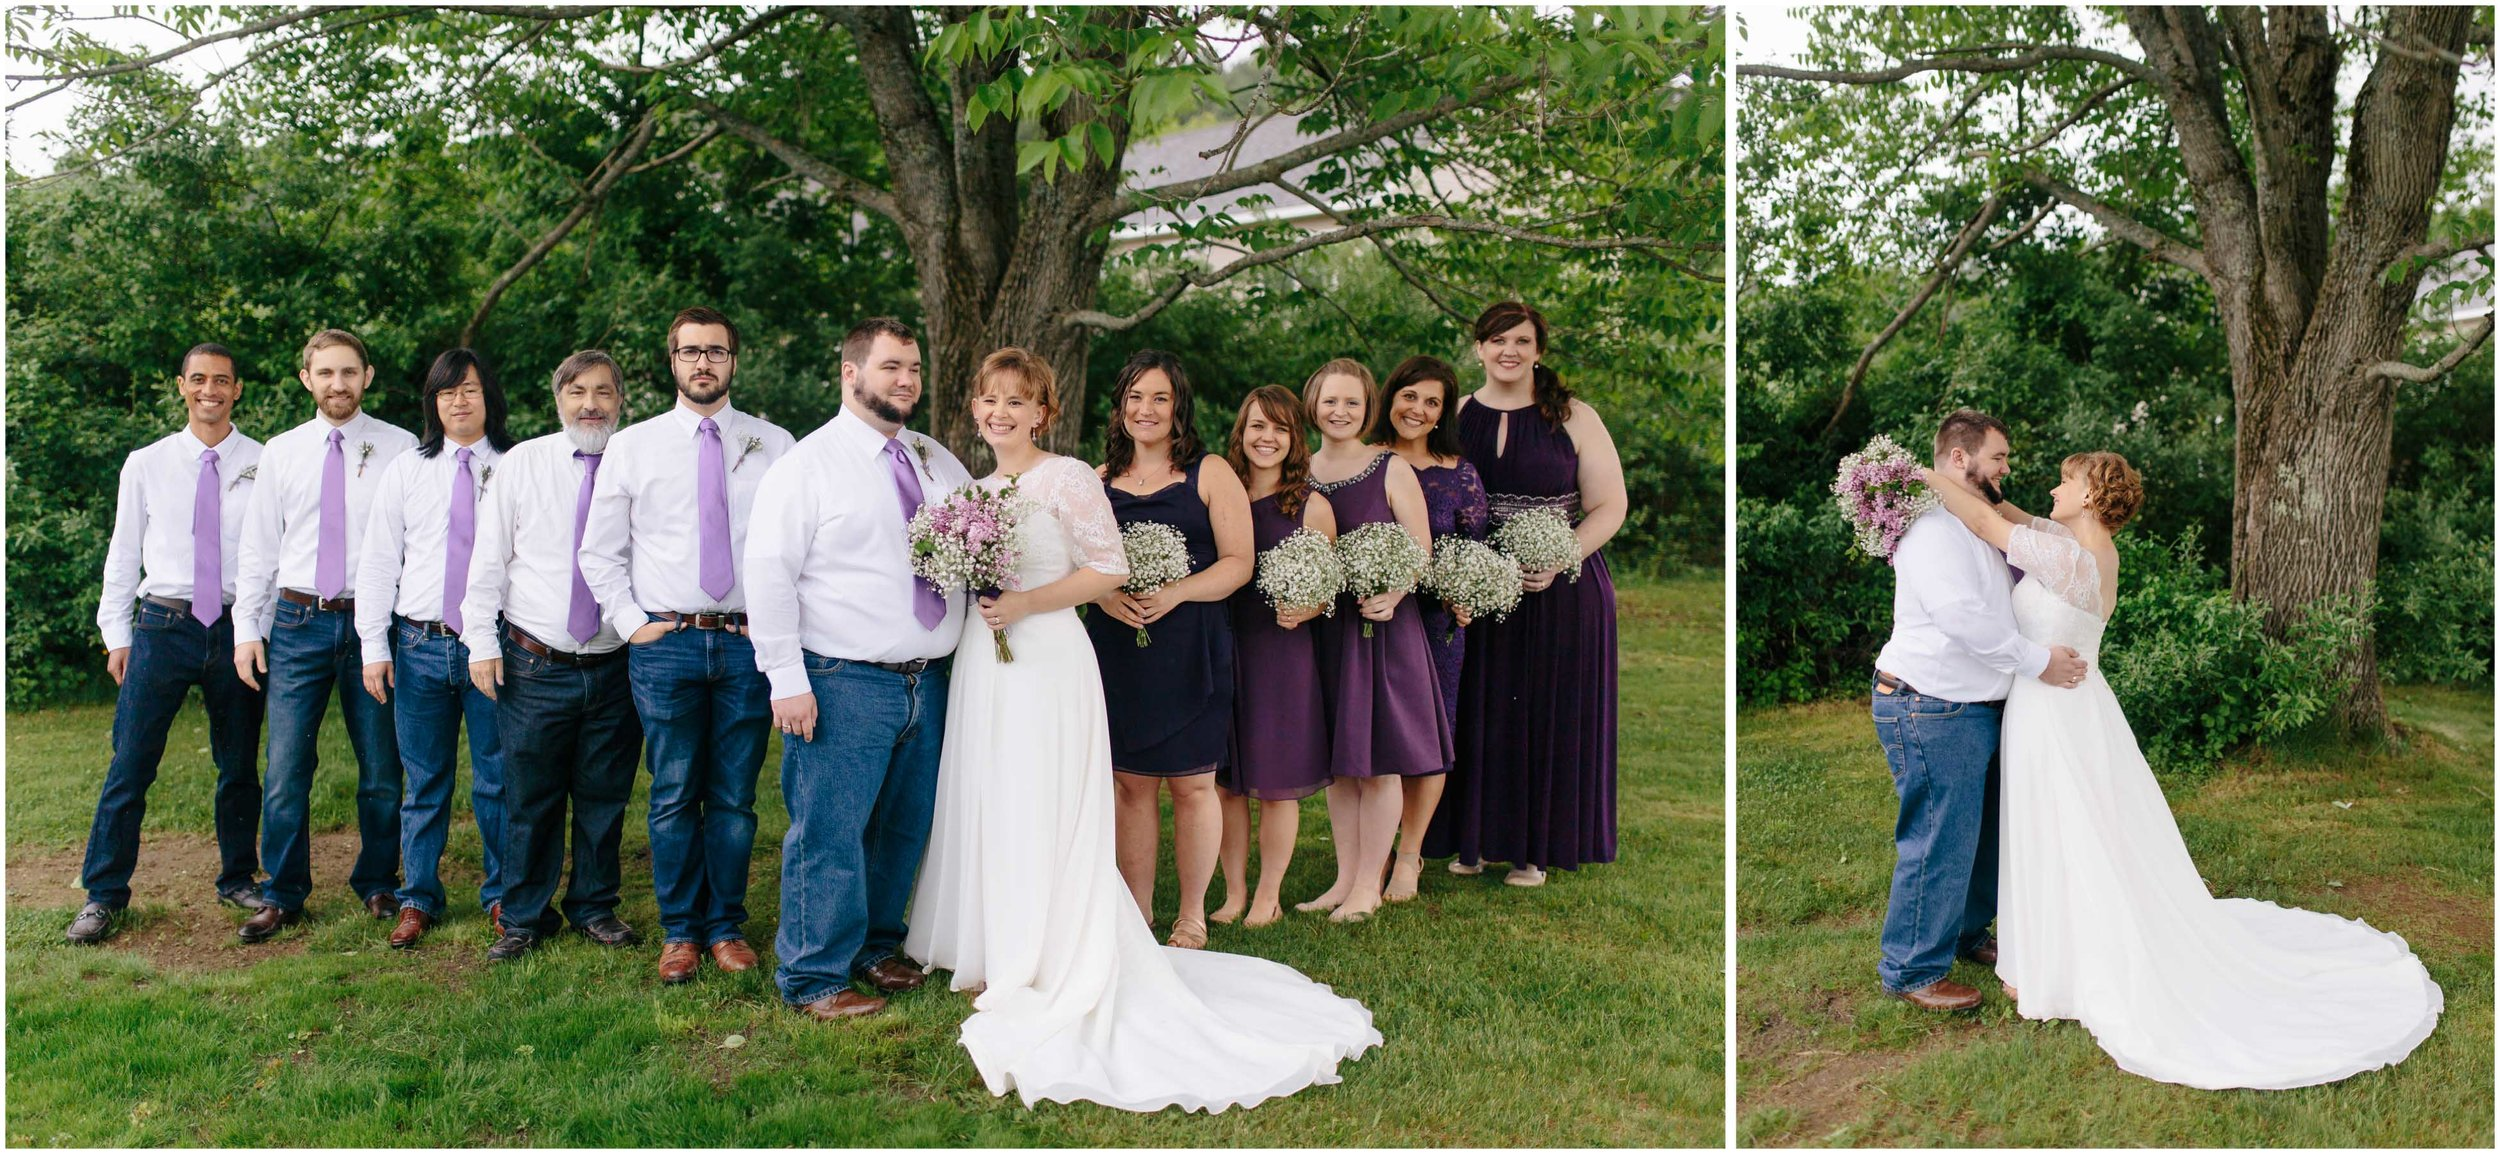 Charming Massachusetts countryside journalistic wedding by Ashleigh Laureen Photography - bride and groom and wedding party